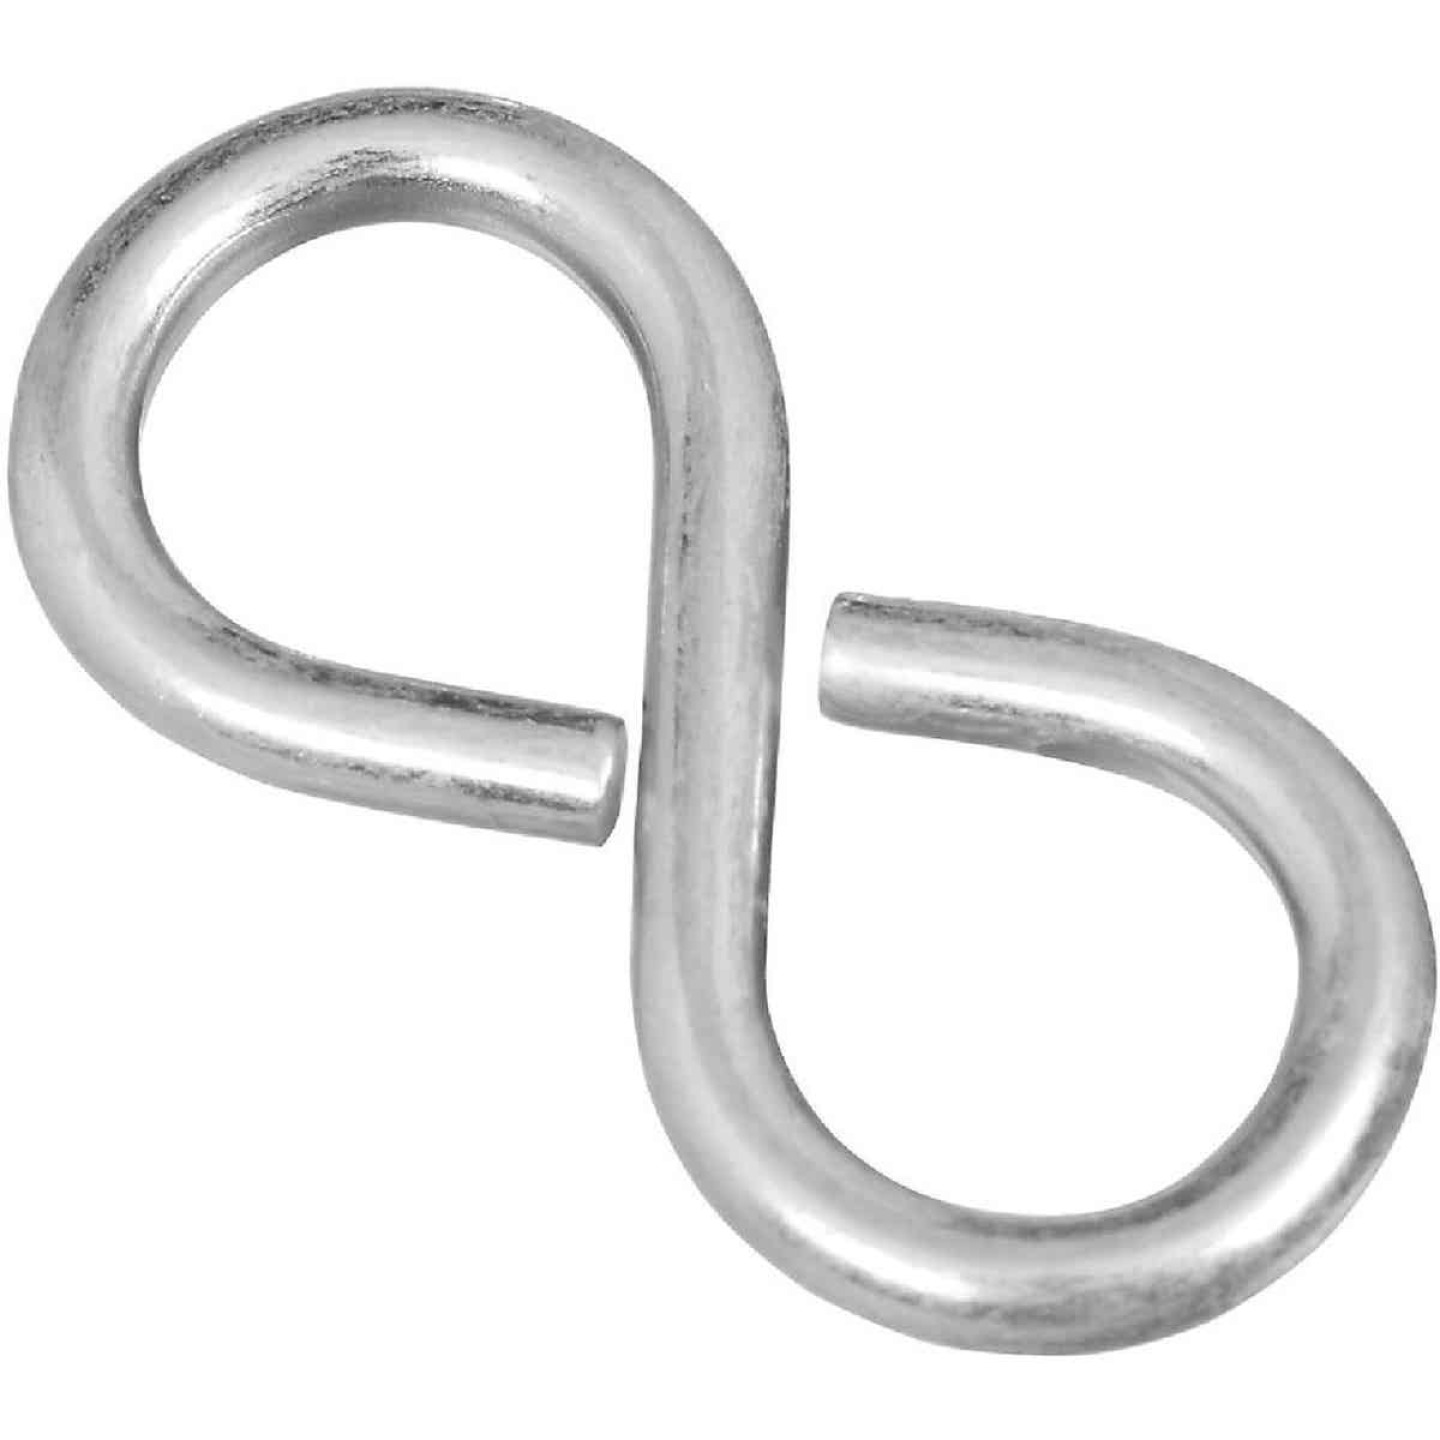 National 1-5/8 In. Zinc Light Closed S Hook (4 Ct.) Image 1